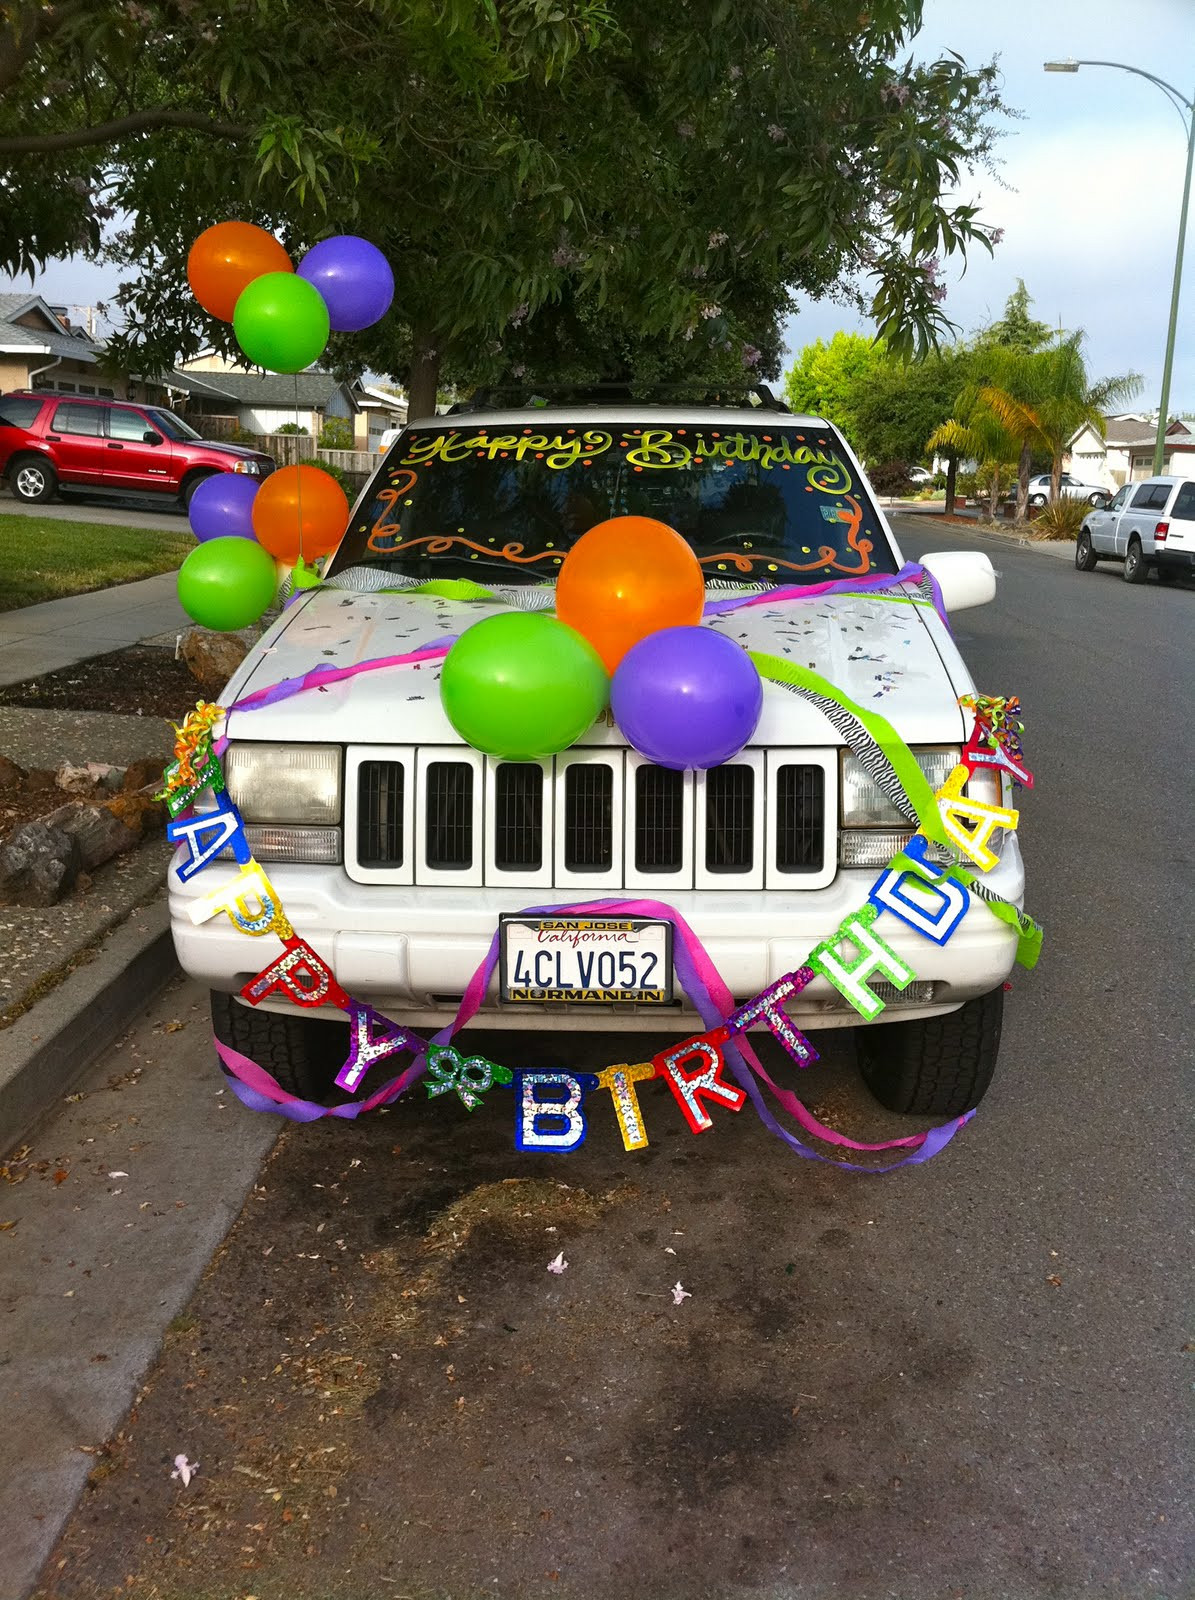 Best ideas about Birthday Car Decorations . Save or Pin Many The Miles Today Was my 22nd Birthday Now.